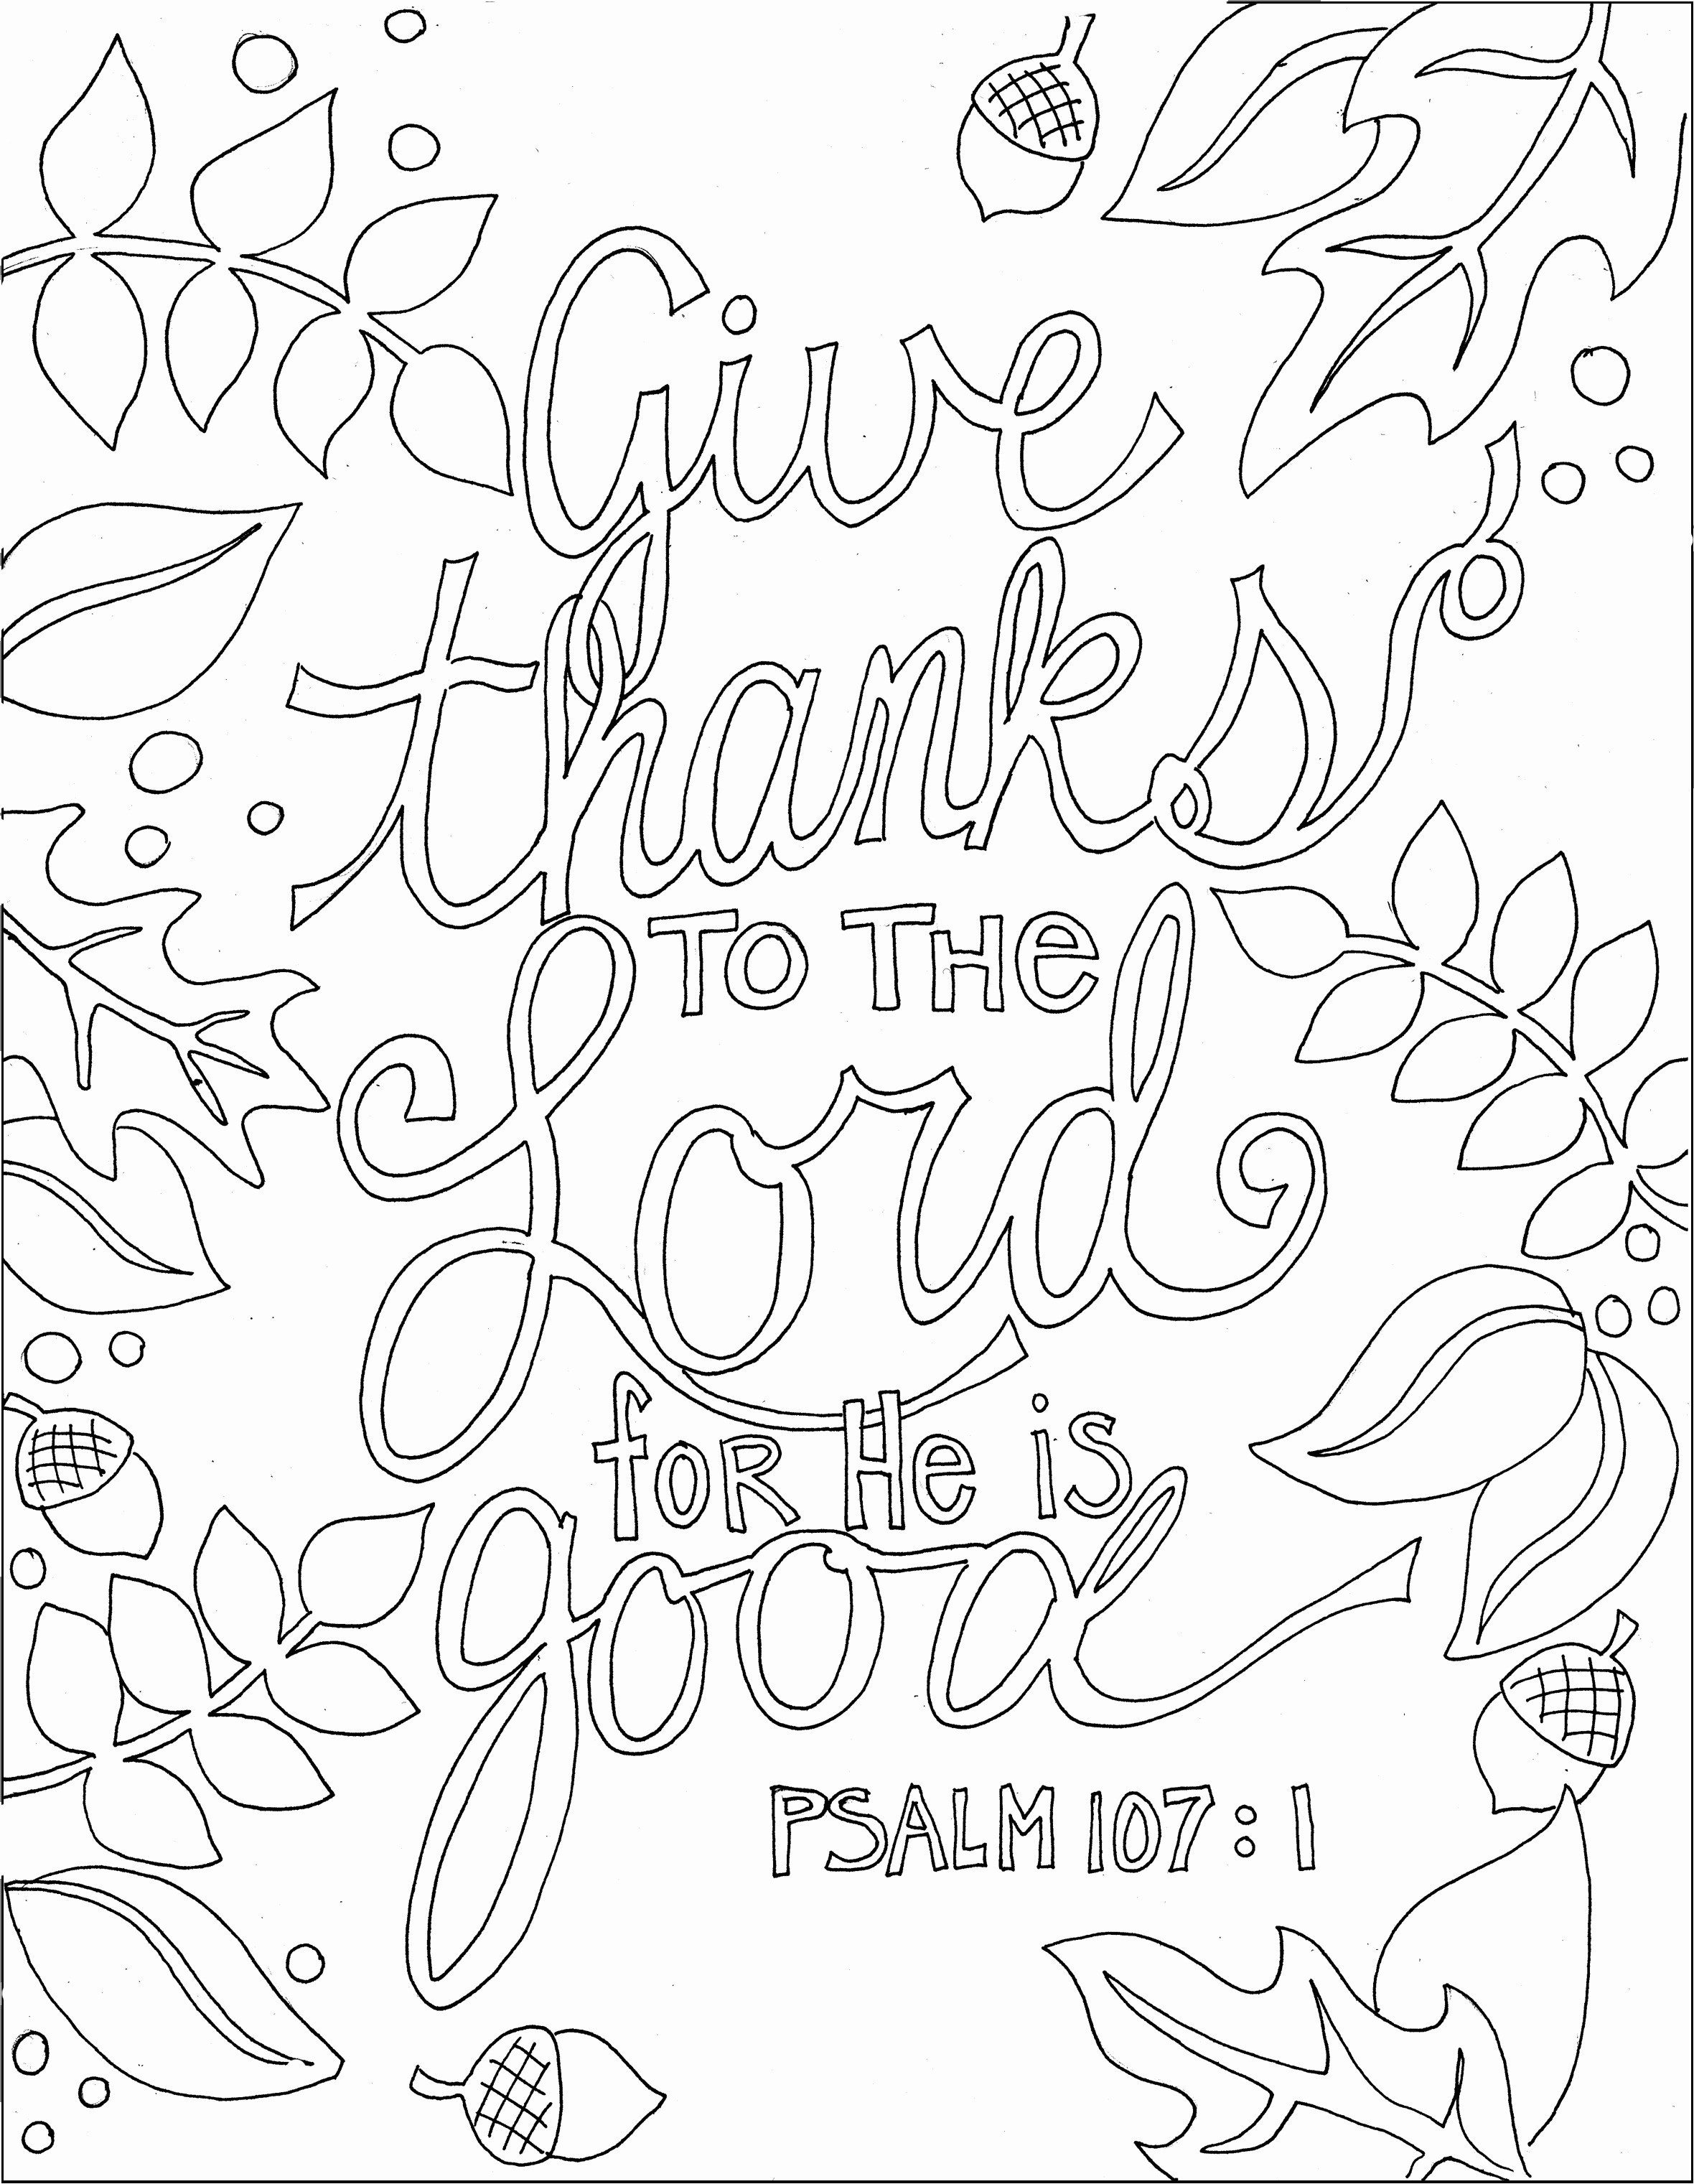 Coloring Pages Bible Stories Free Unique Bible Verse Coloring Pages - Free Printable Bible Story Coloring Pages